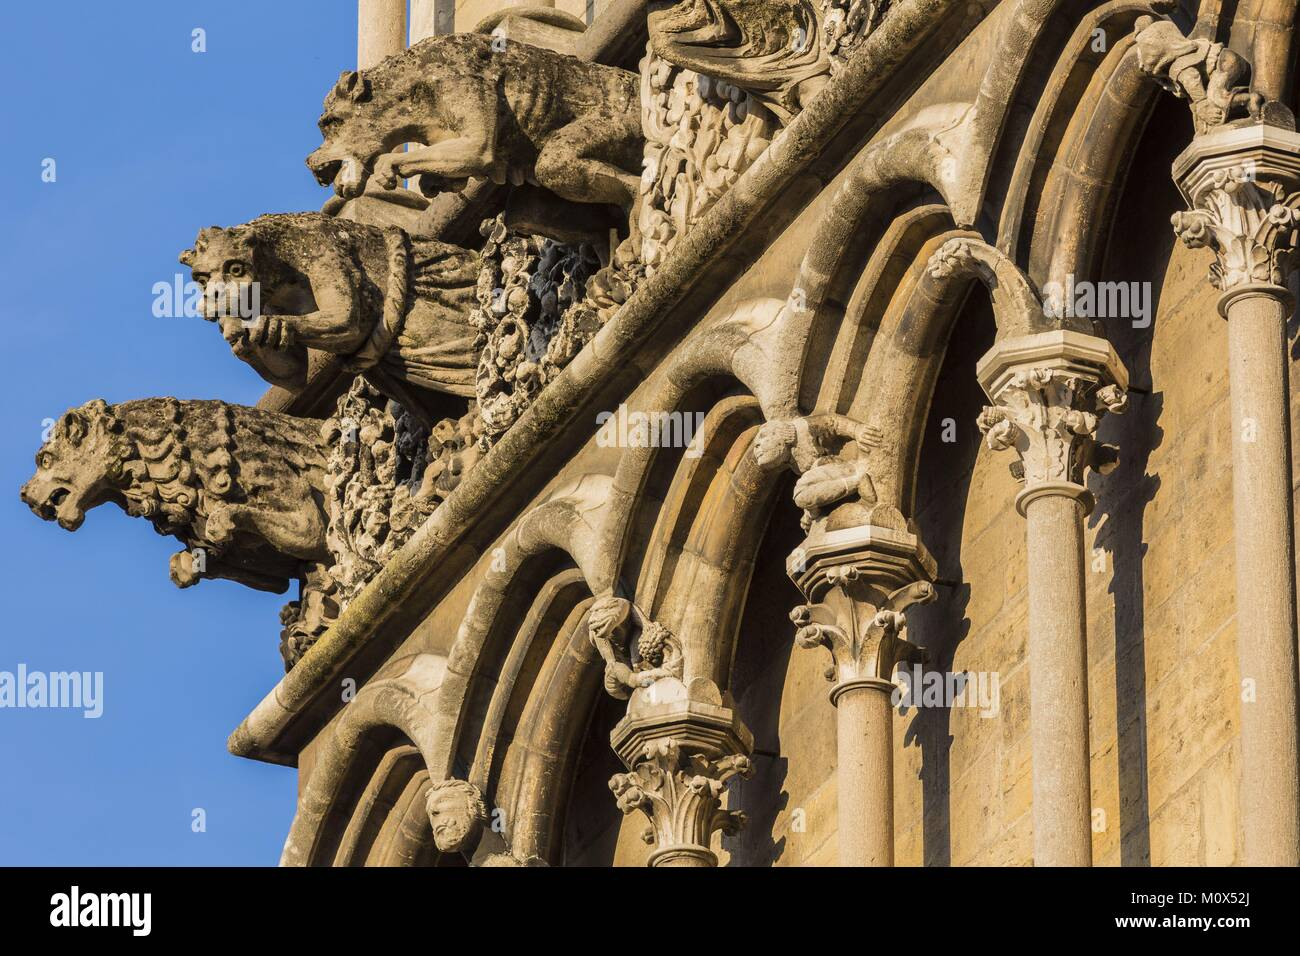 France,Cote d'Or,Cultural landscape of Burgundy climates listed as World Heritage by UNESCO,Dijon,Notre Dame Church,gargoyles Stock Photo